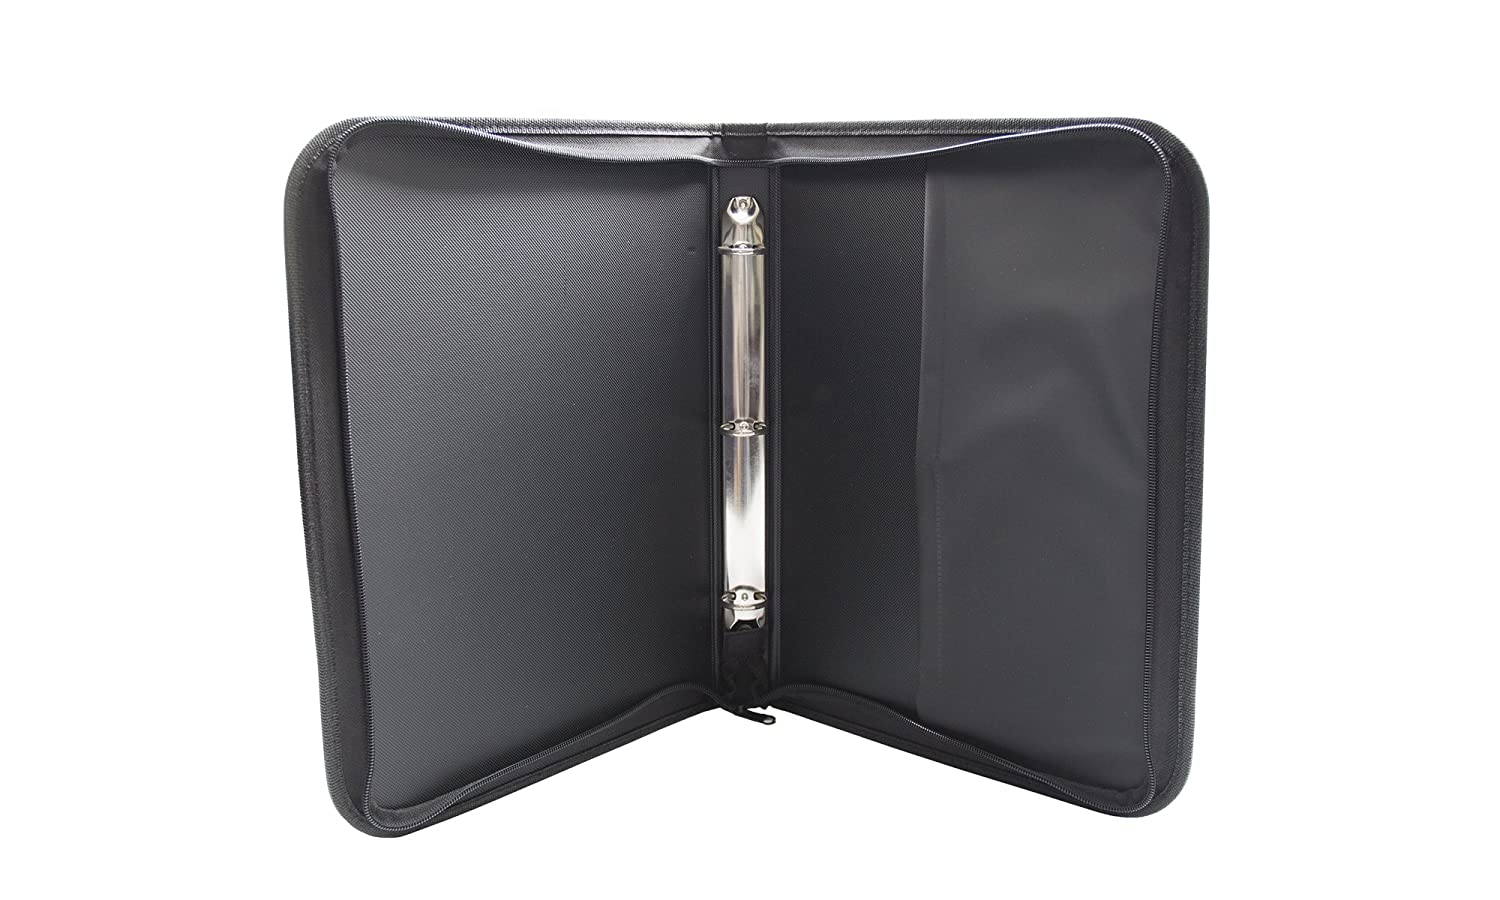 MeMyArt HIGH QUALITY PORTFOLIO RING-BINDER FOLDER/CASE - A3 BLACK- EXTRA STRONG AND FIRM! A3P